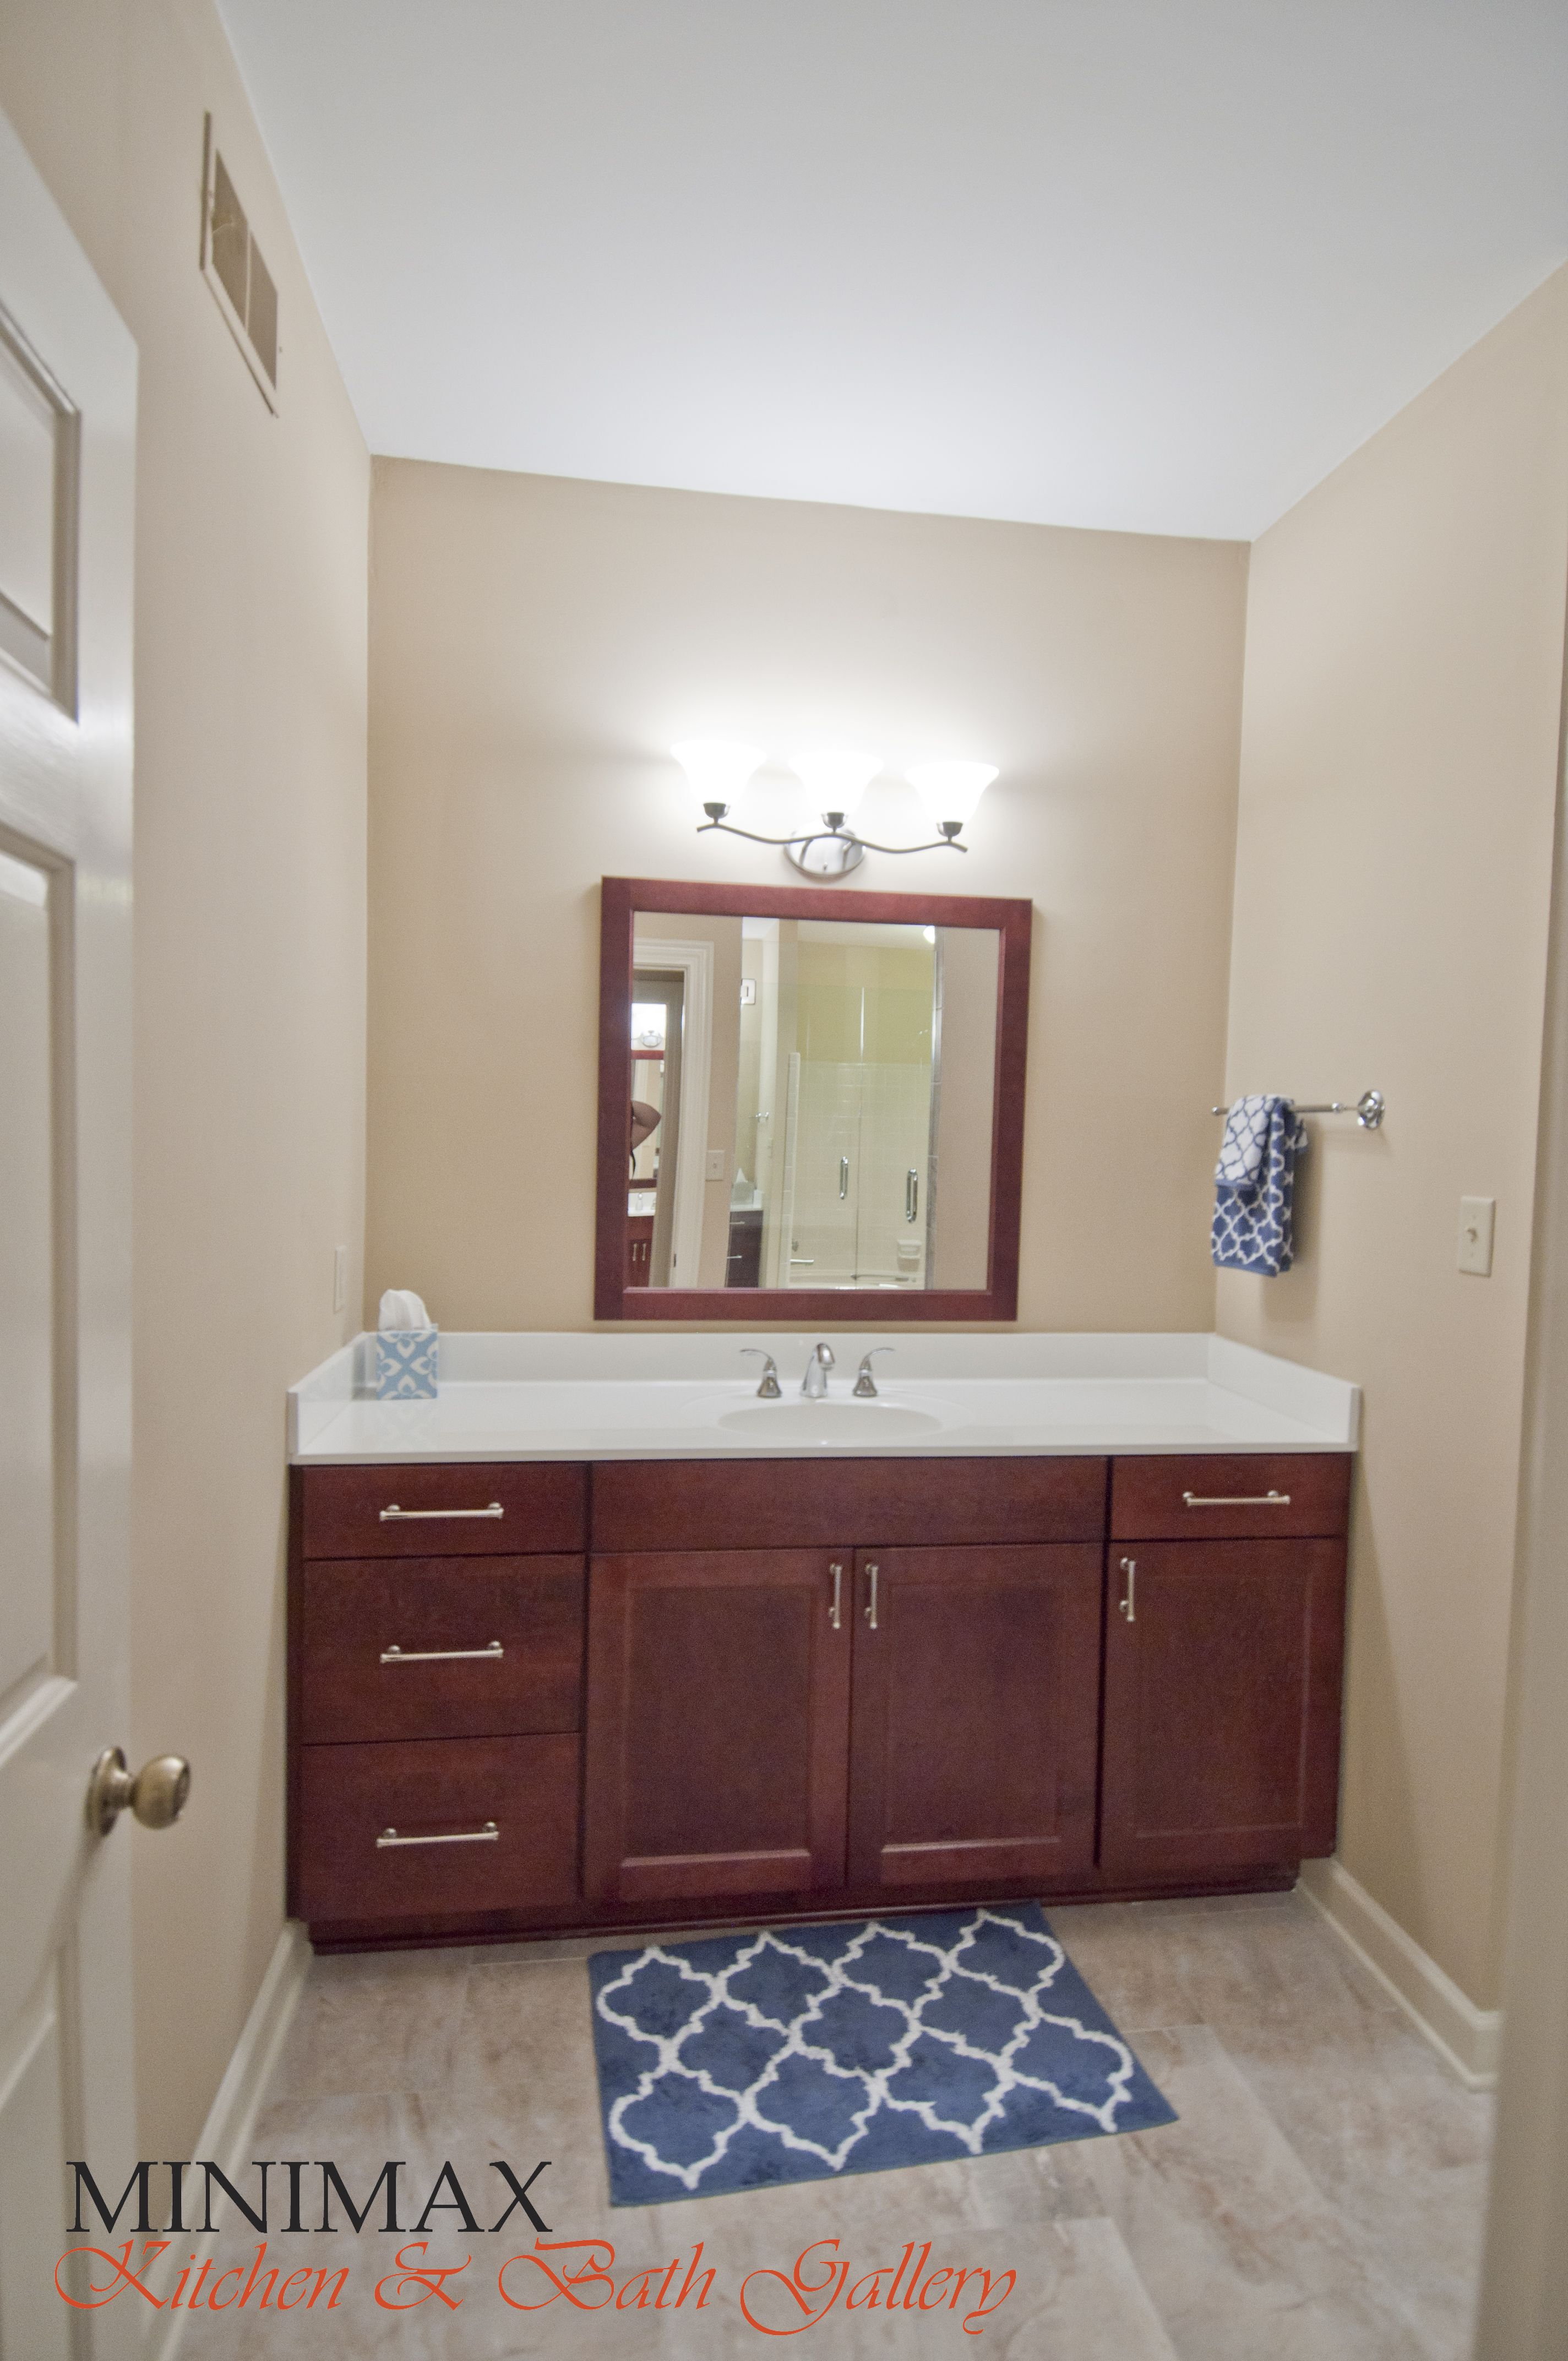 bathroom remodels minimax kitchen and bath gallery